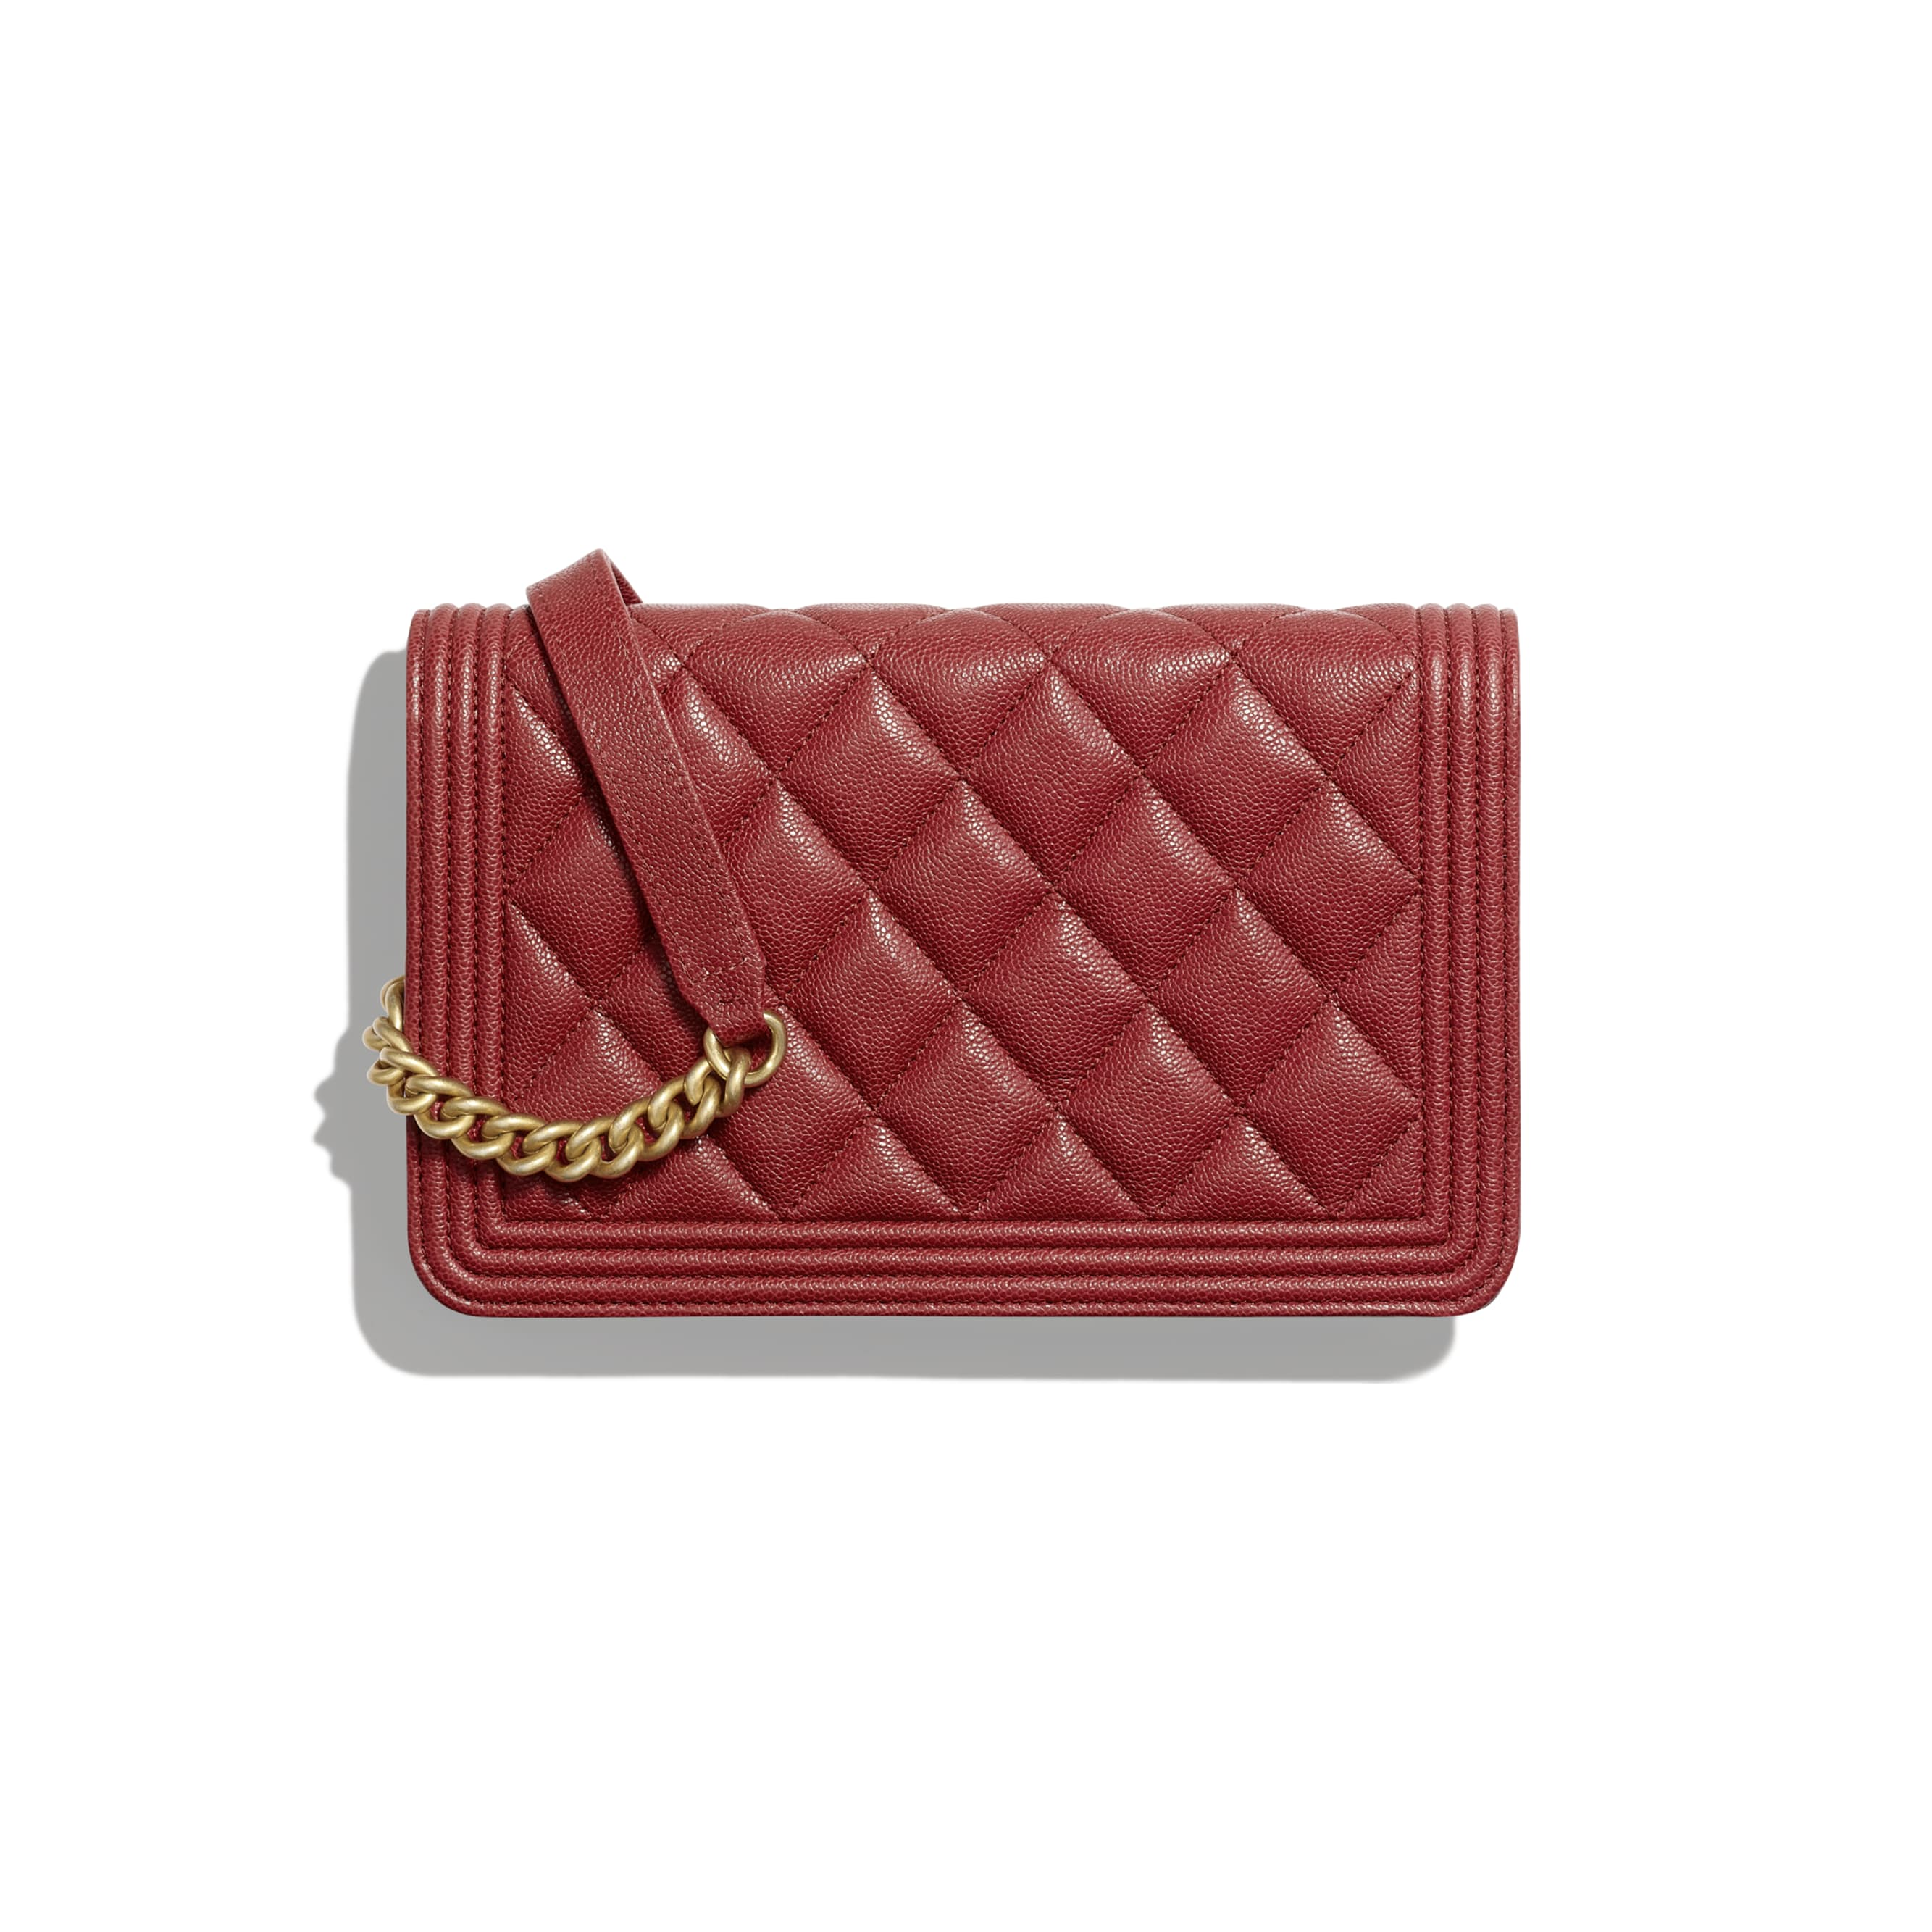 BOY CHANEL Wallet on Chain - Red - Grained Calfskin & Gold-Tone Metal - Alternative view - see standard sized version